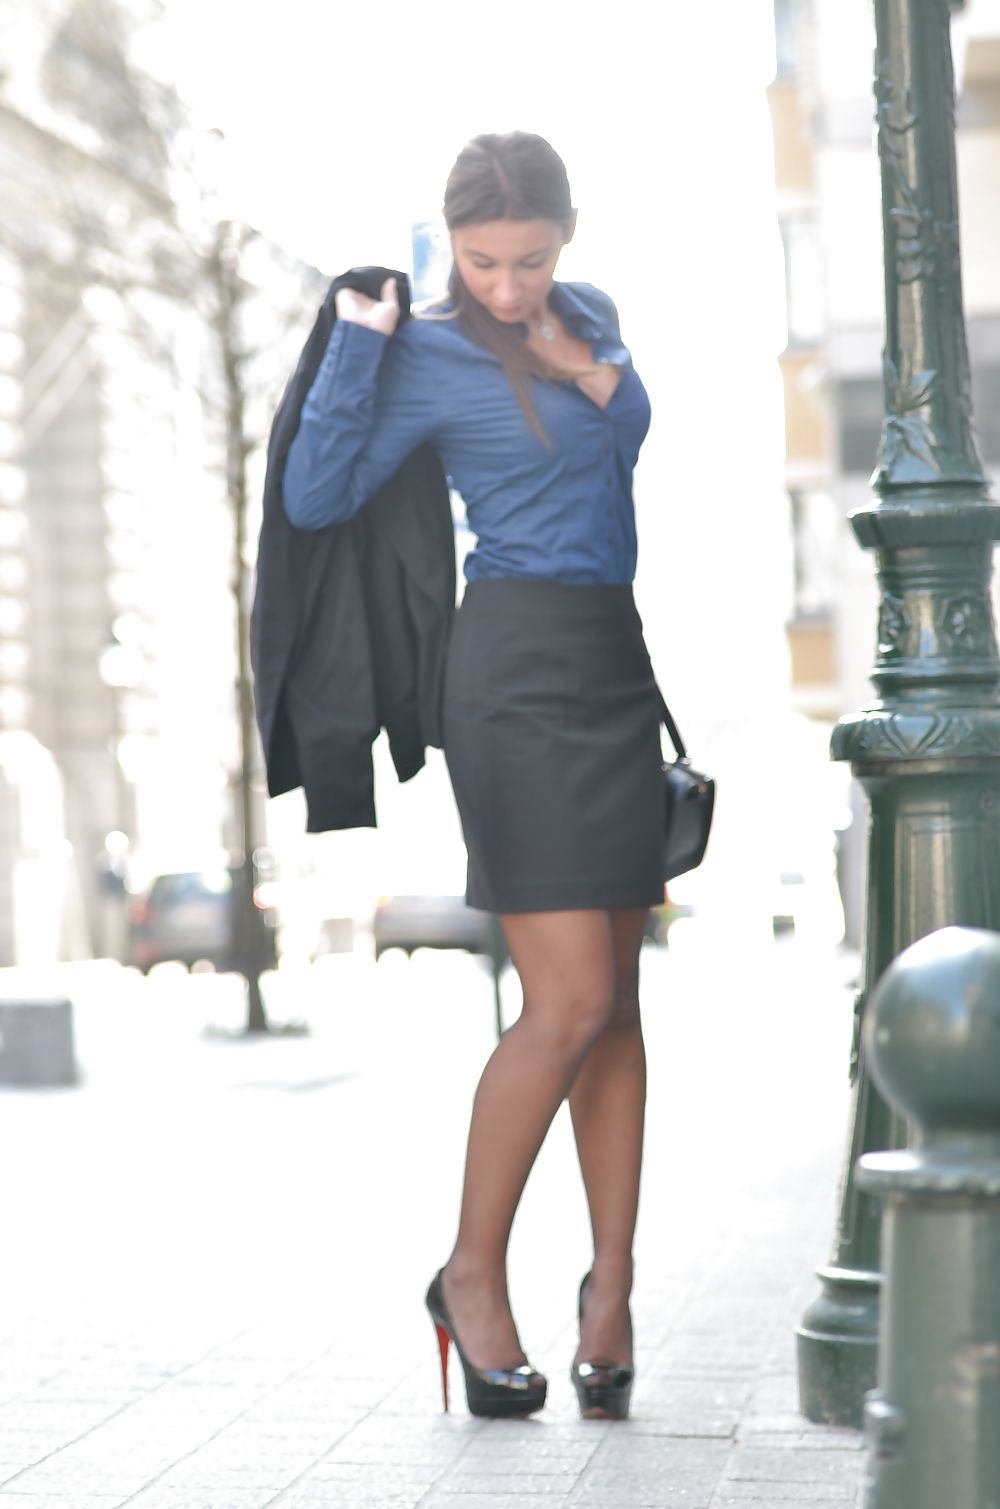 Images - Skirts and heels tumblr